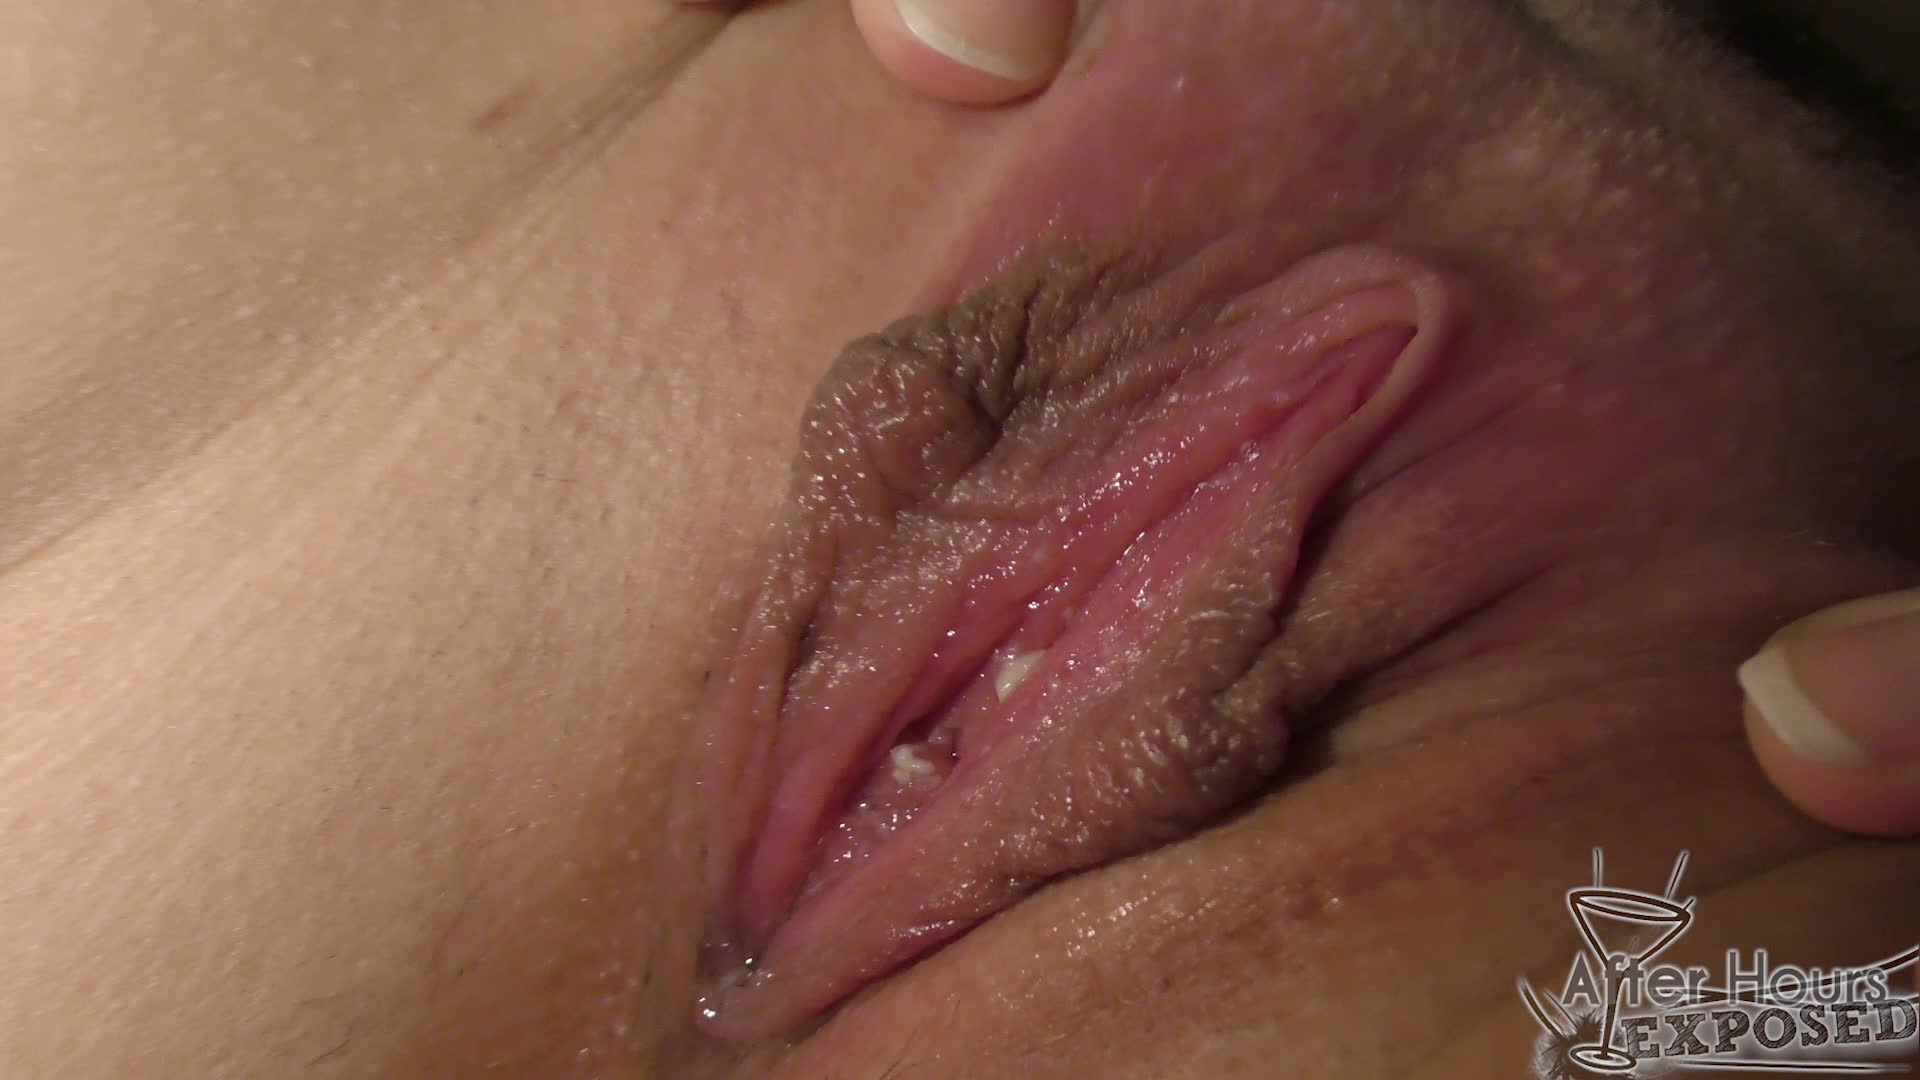 peach bowser porn cumming